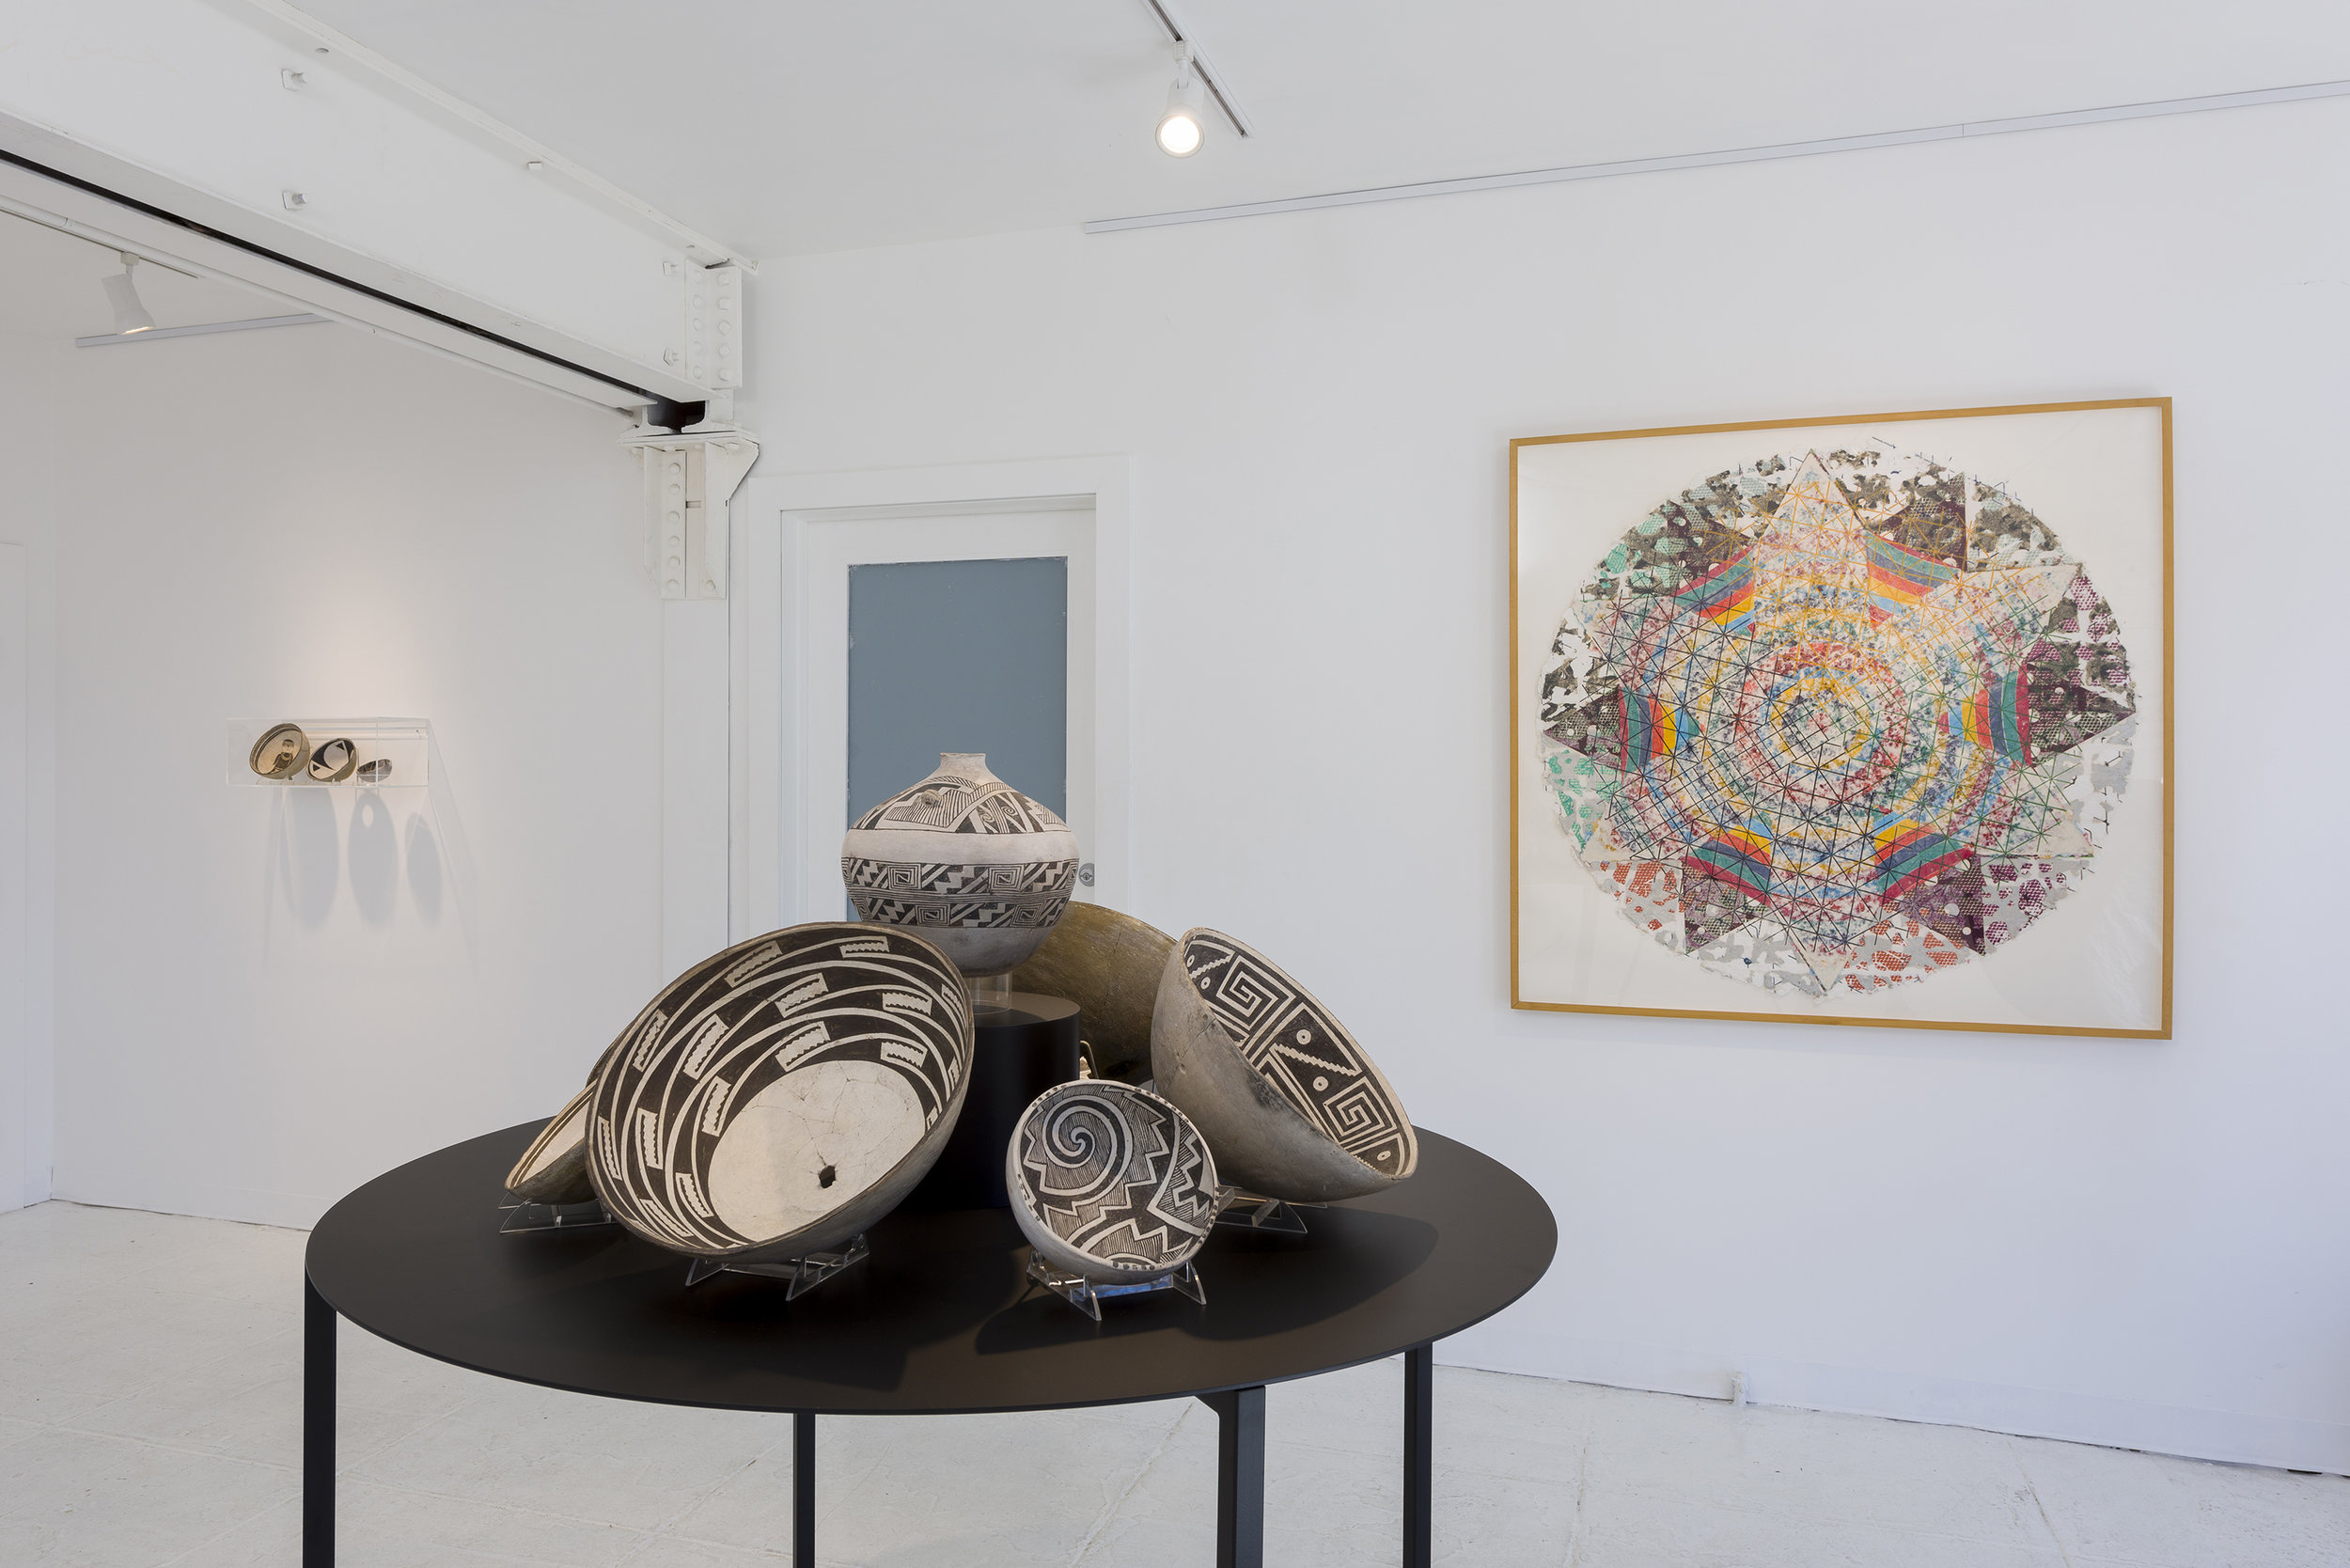 Installation view of  Rupture of Plane: Alan Shields + Mimbres Painted Pottery   September 9 - October 7, 2018  Photo by Ruben Diaz   Link to Exhibition Text